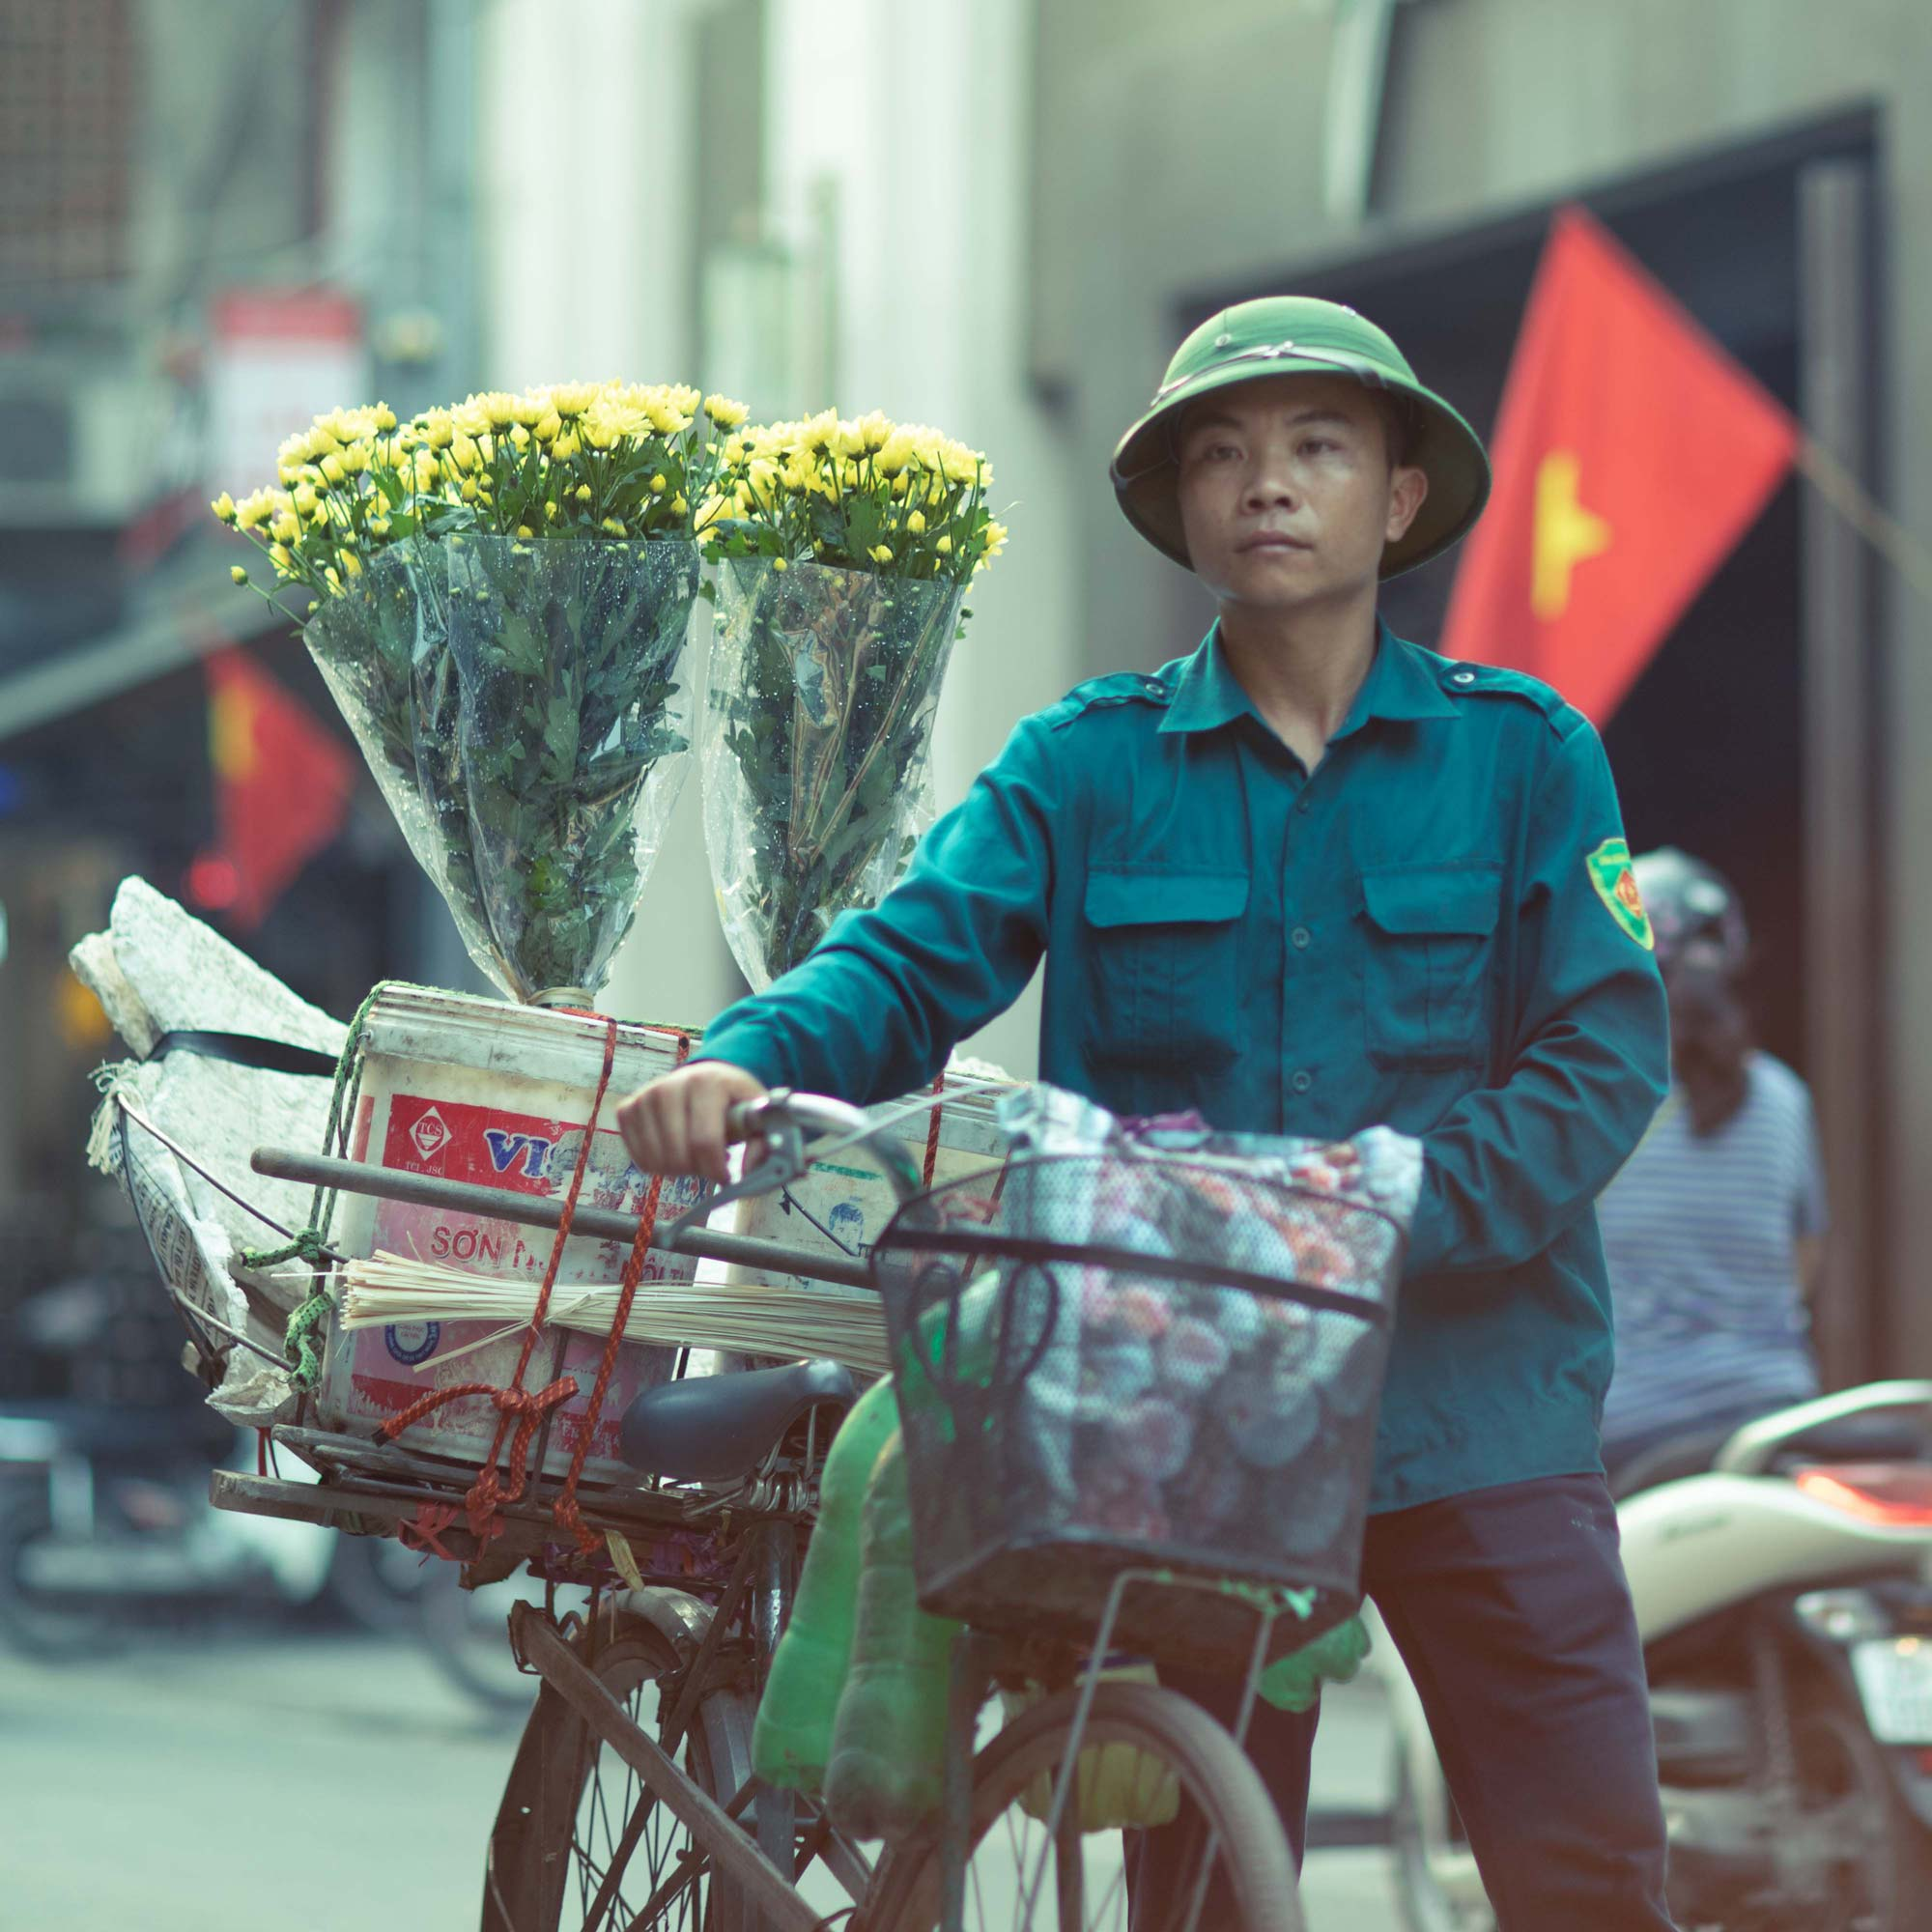 Street Photography of Man with bike and flowers in Hanoi, Vietnam | Travel Photography